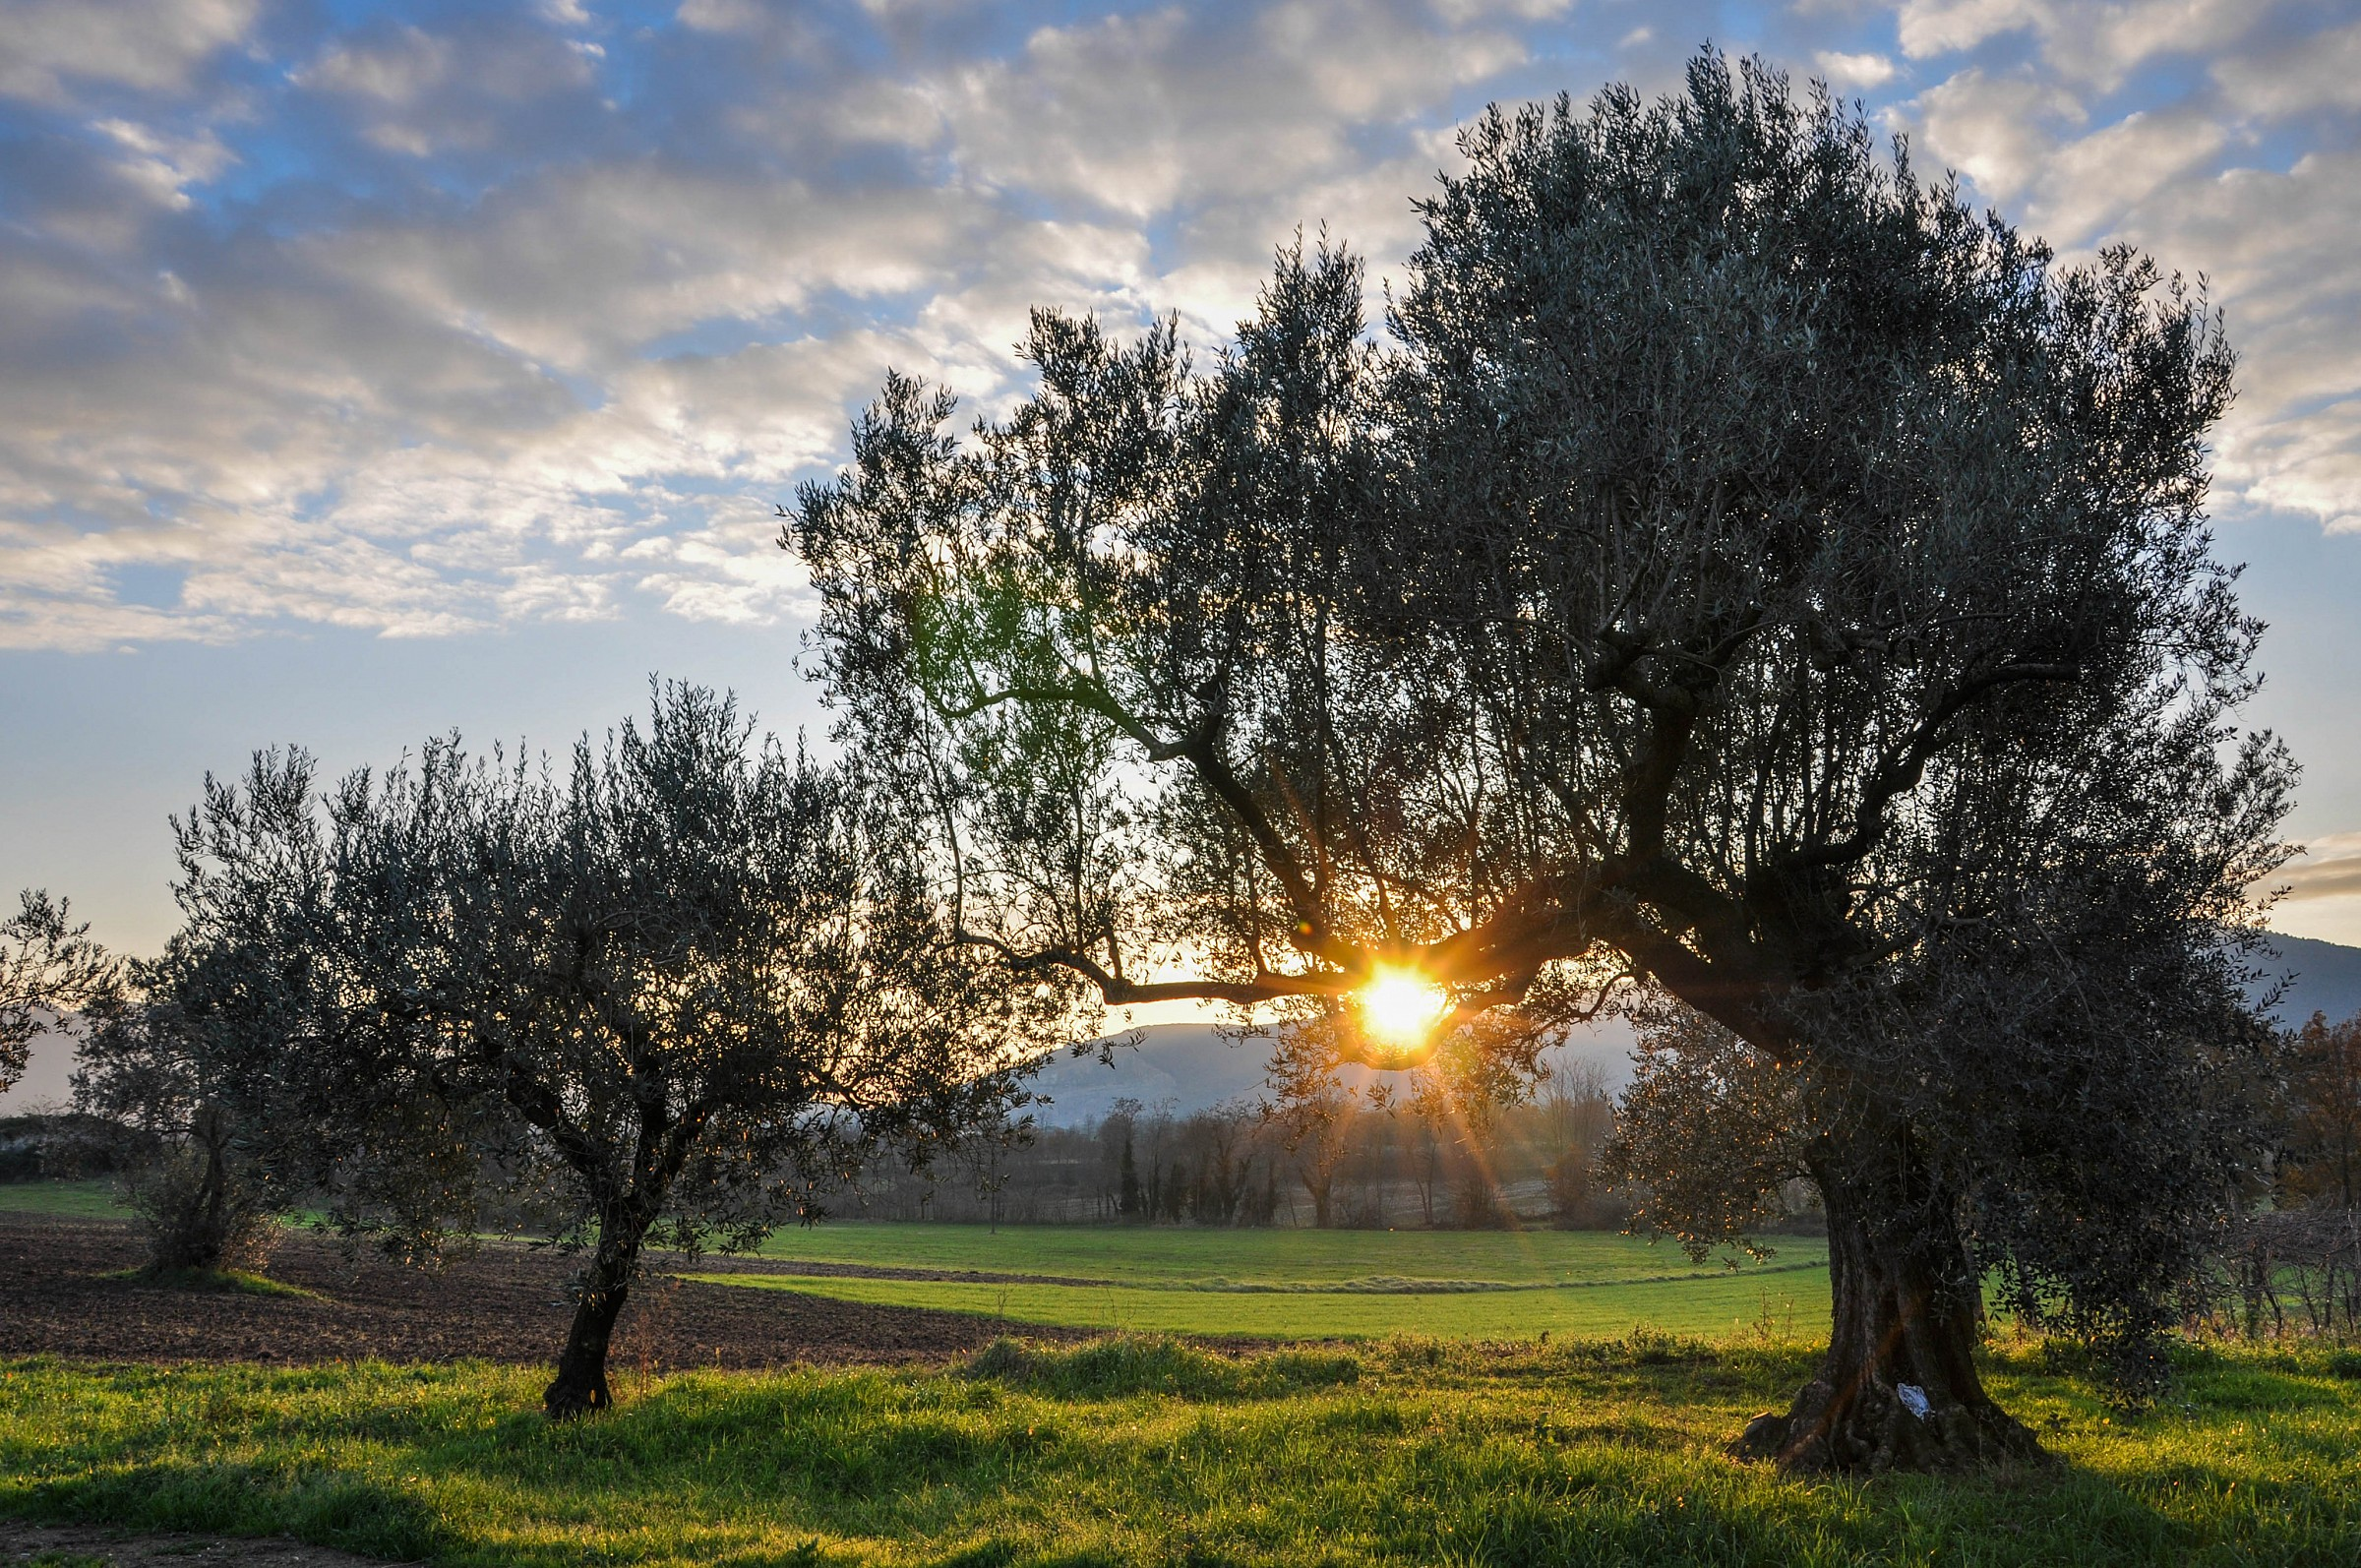 The friend of the olive trees...